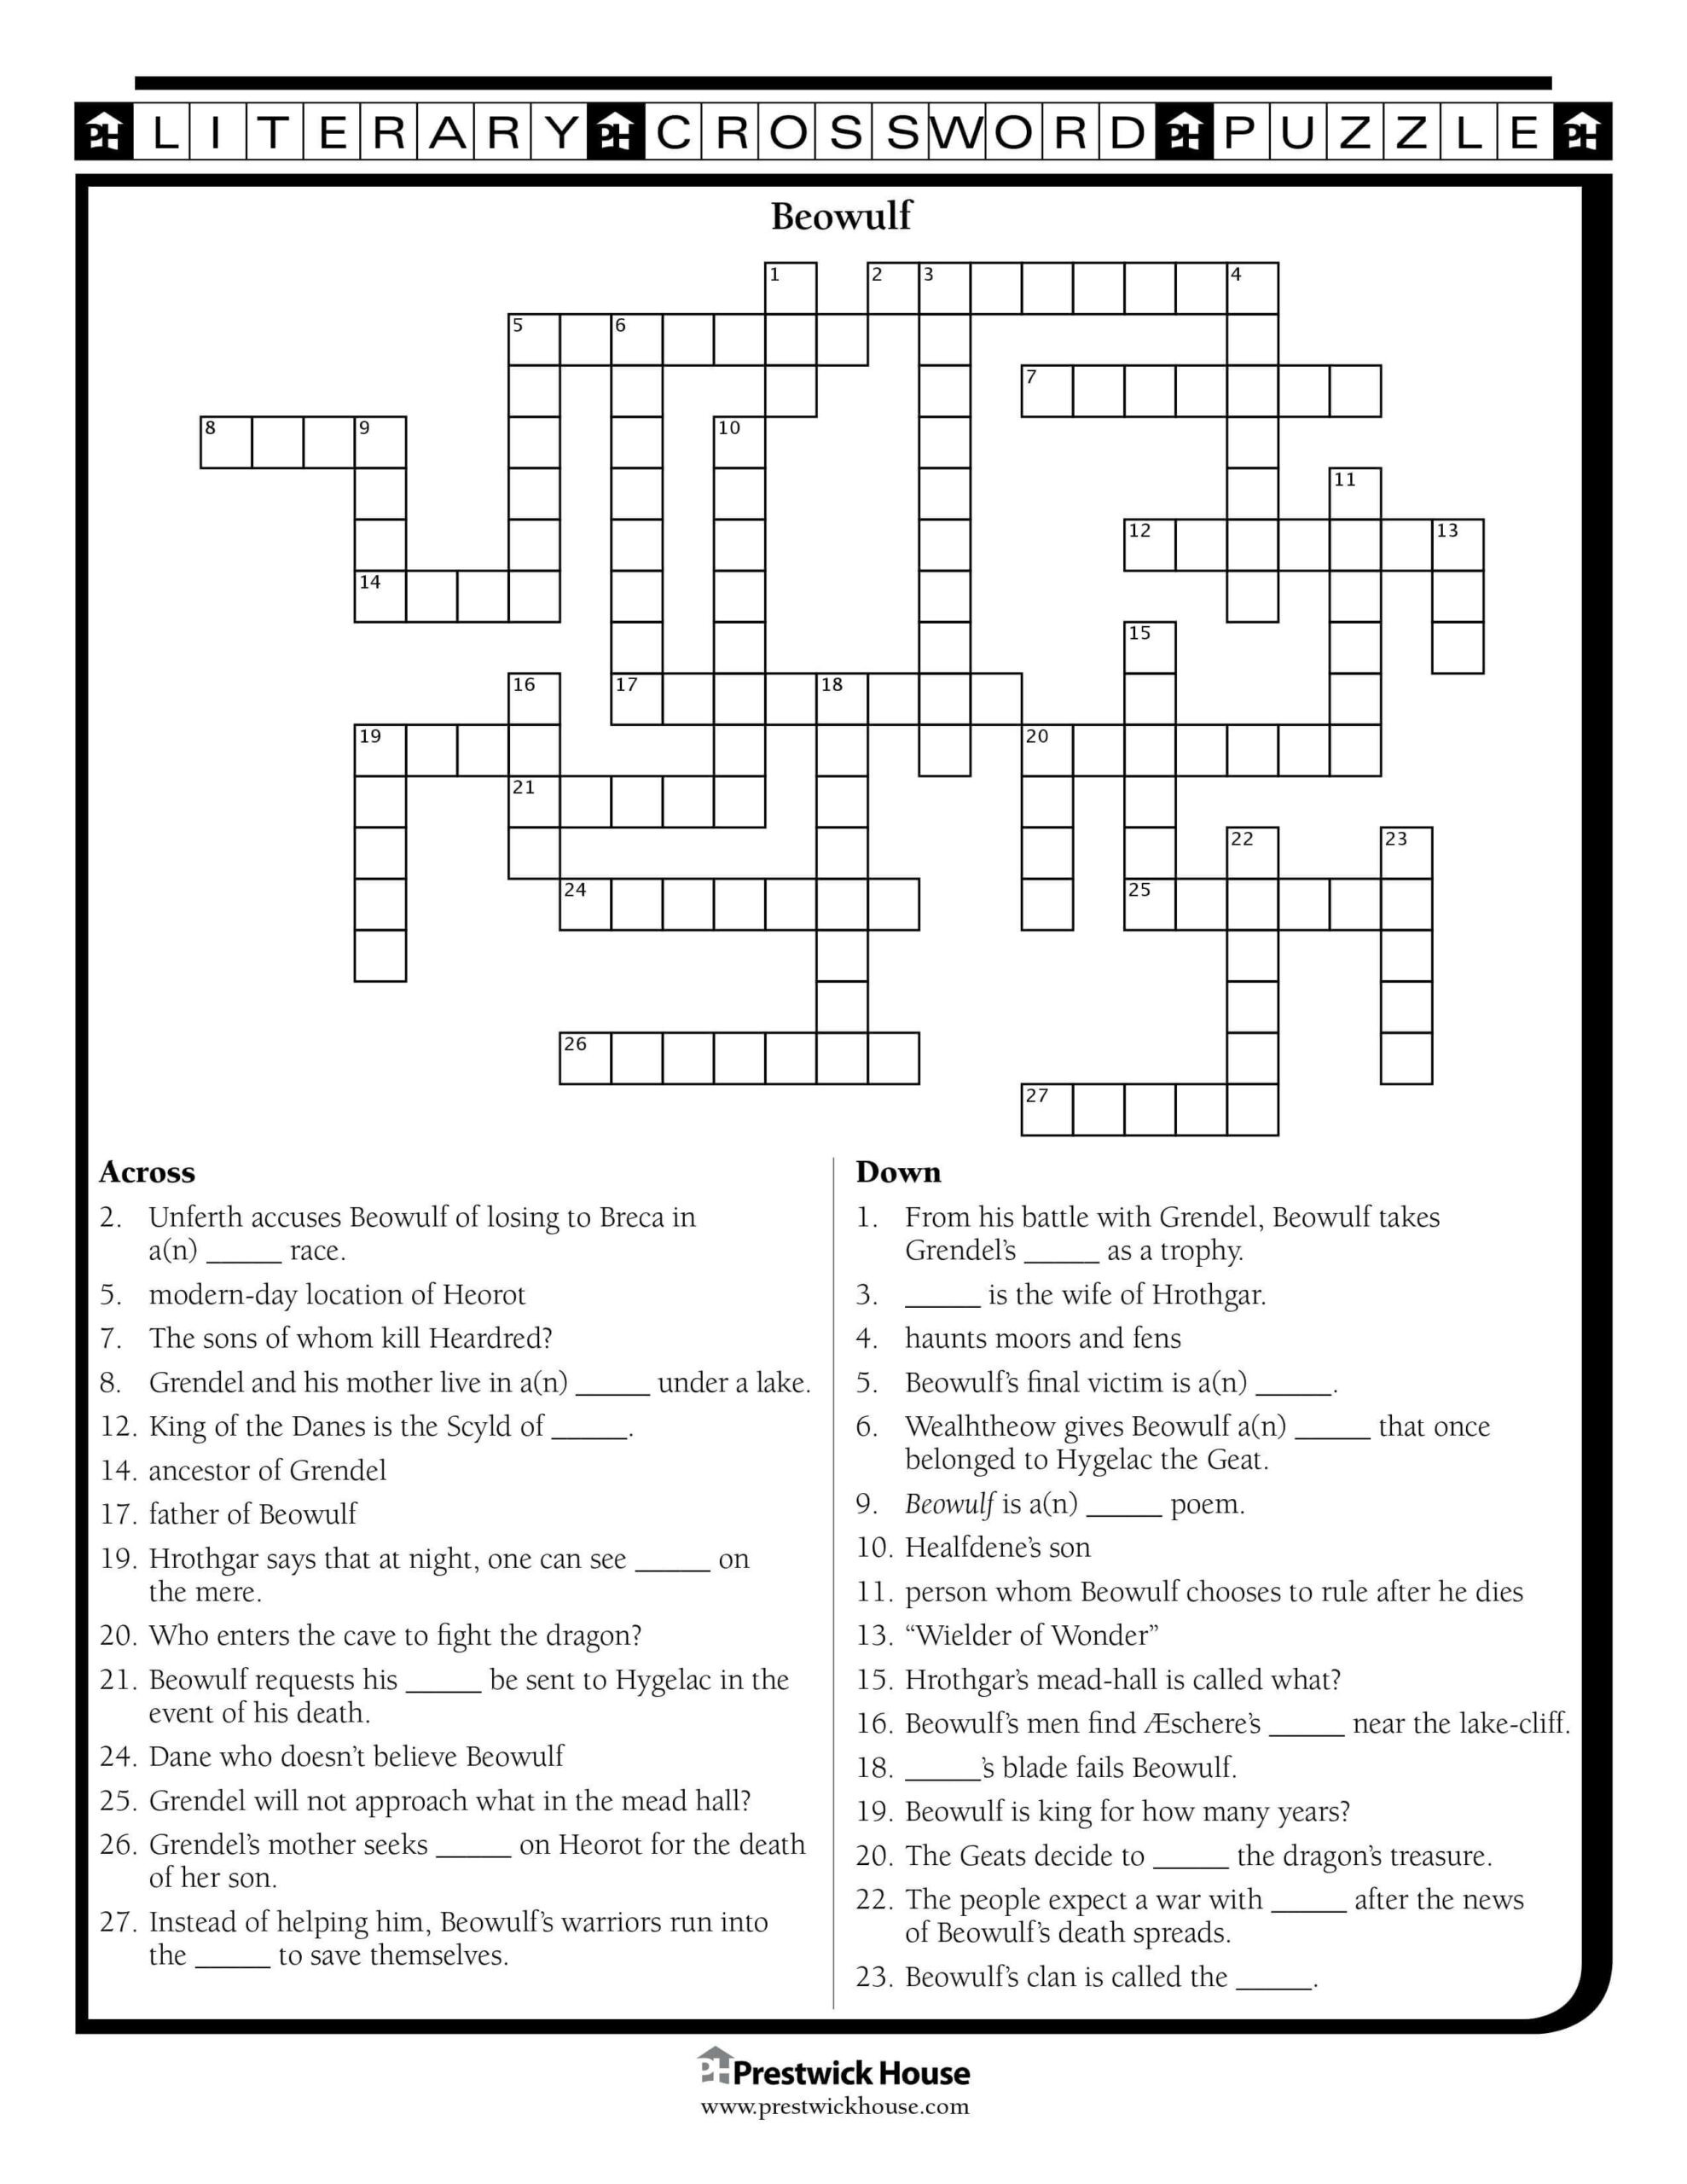 6th Grade Math Crossword Puzzles Free Crossword Puzzles English Teacher Library the Daring